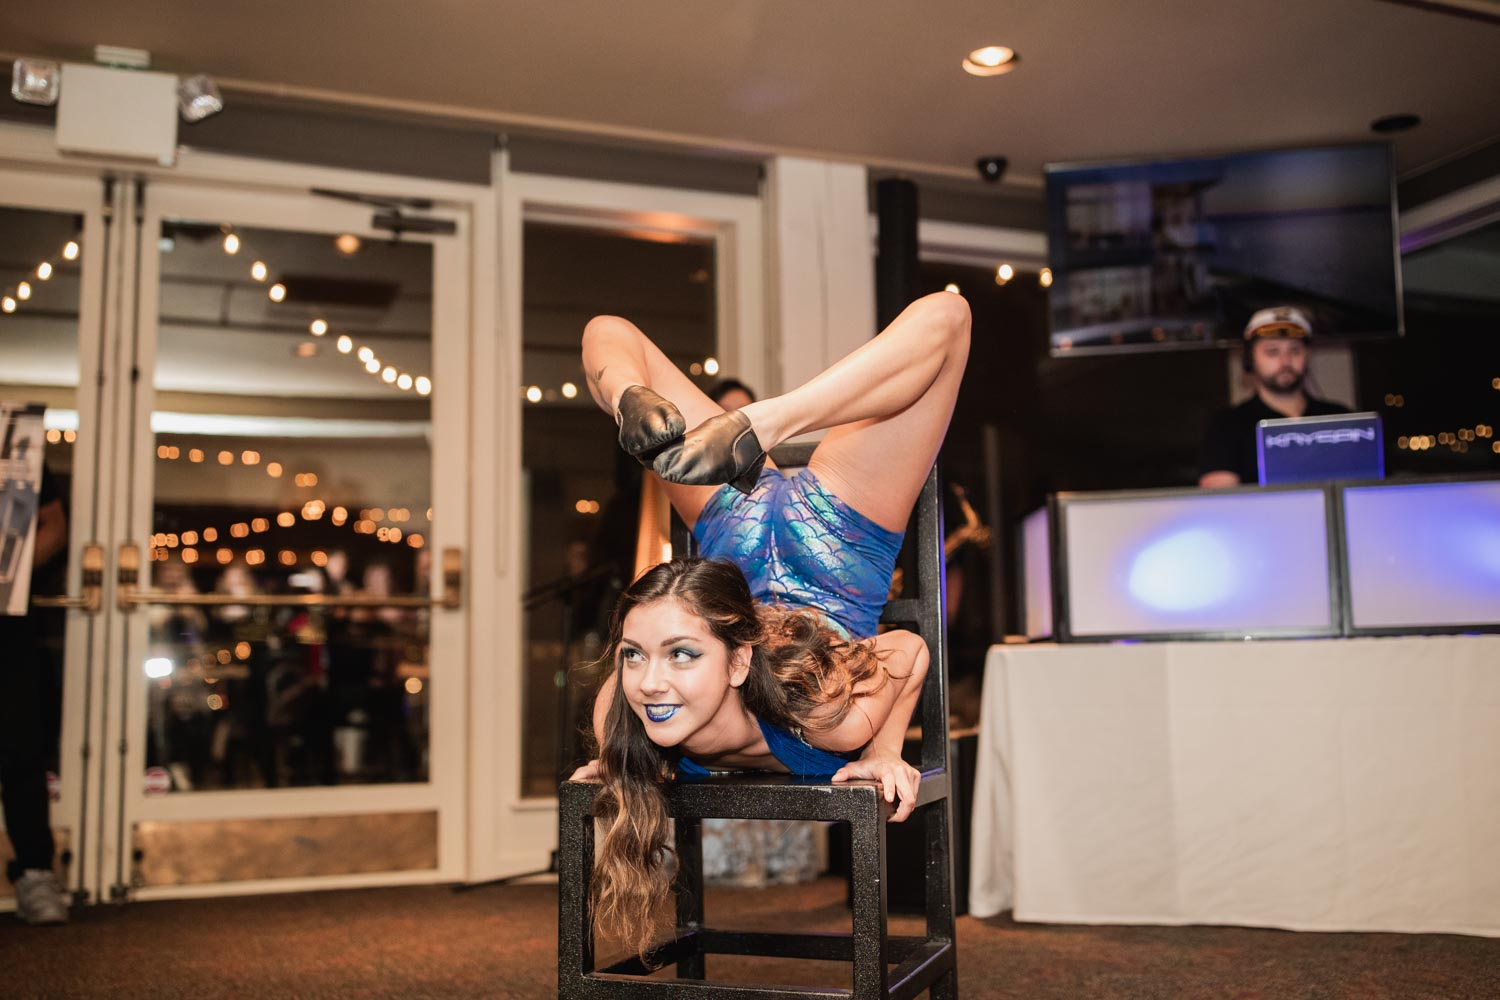 Acrobatic performer at Realogics Sotheby's International Realty (RSIR) groundbreaking event party.